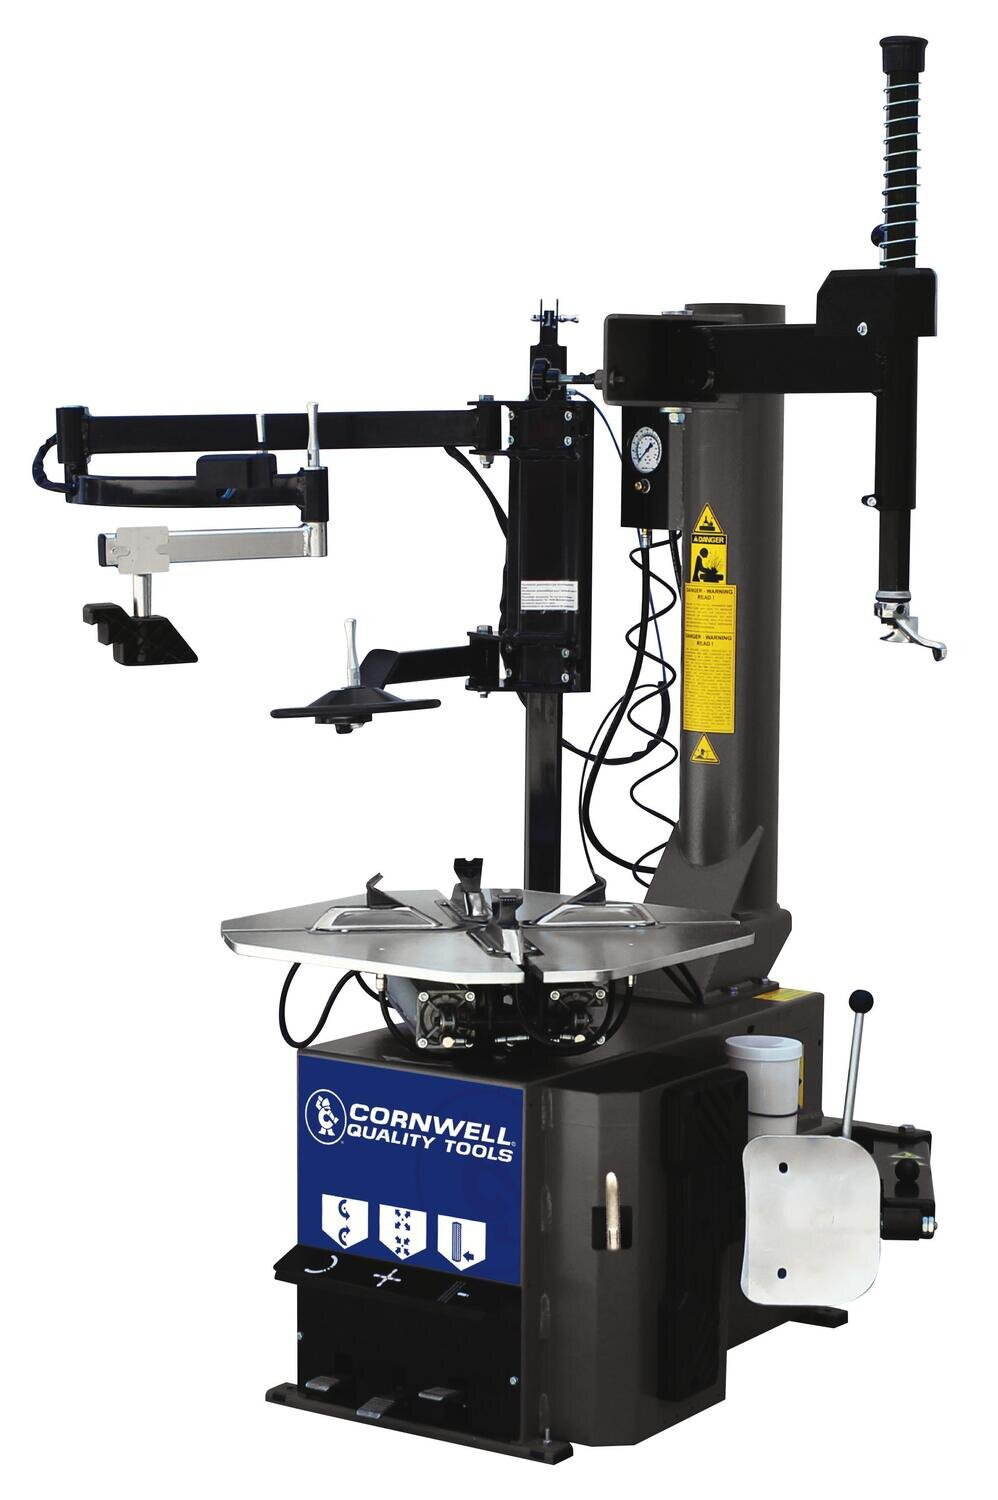 CMBCSM825EVOAIRPA - Swing Arm Tire Changer w/ Bead Press System (Air Powered)